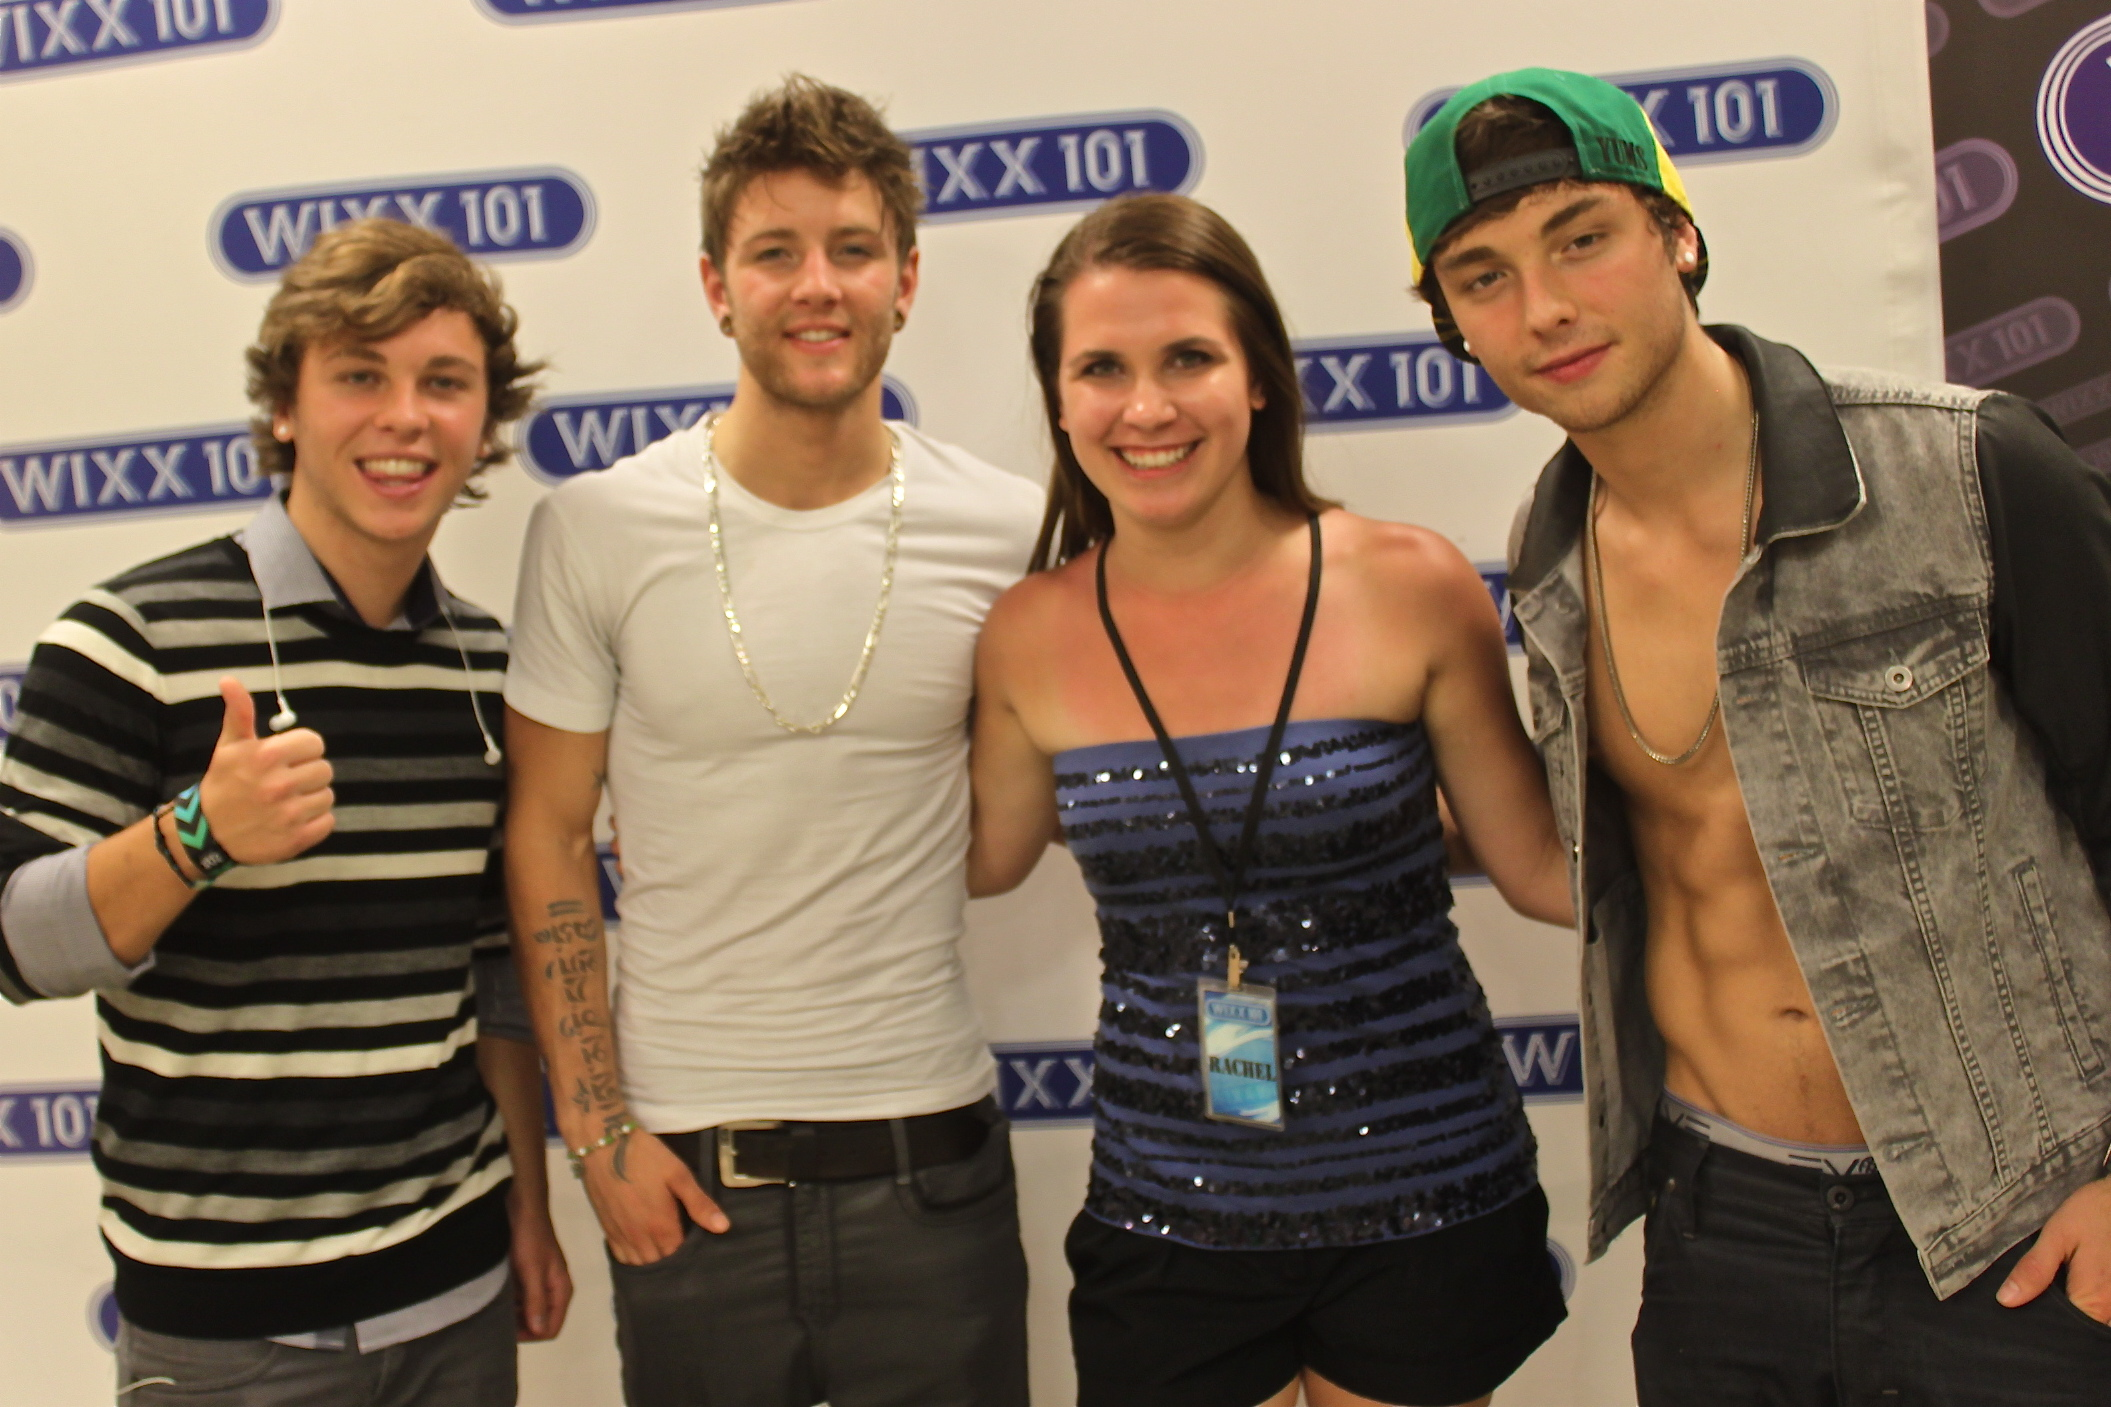 emblem3 meet and greet photos blue